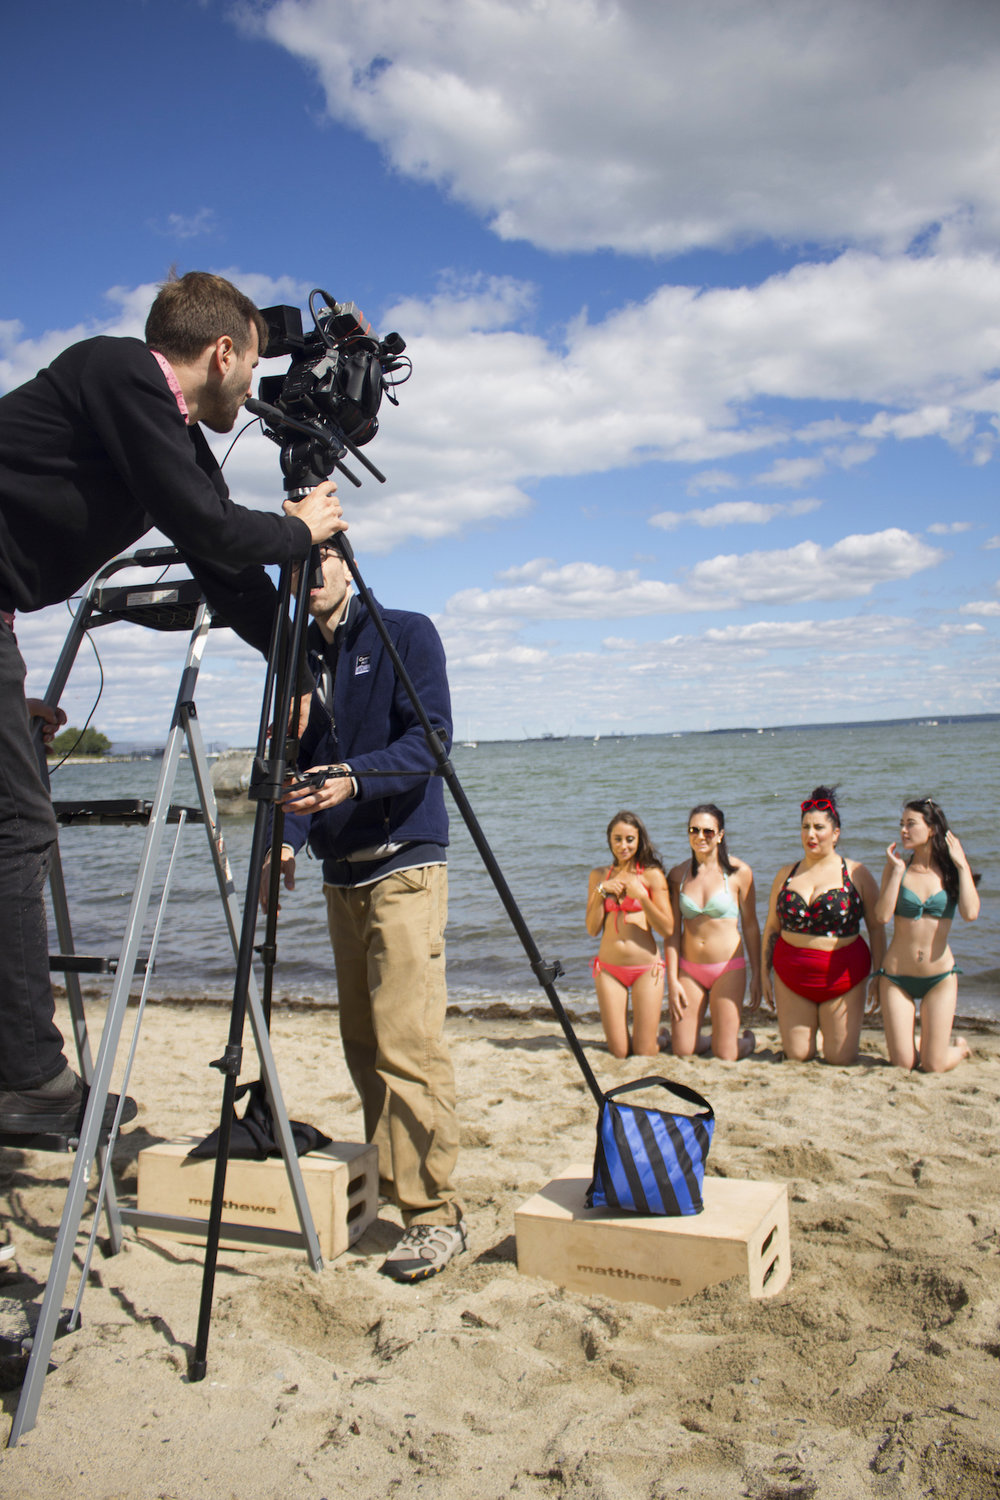 Director of Photography Denez McAdoo sets up the shot, with Assistant Director Adrian Atwood and Actors Acei Martin, Catalina Snape, Alessandra Grima and Maya Simone on the set of Geena Matuson's production of 'Fauxmercials' beach ads, September 2016.